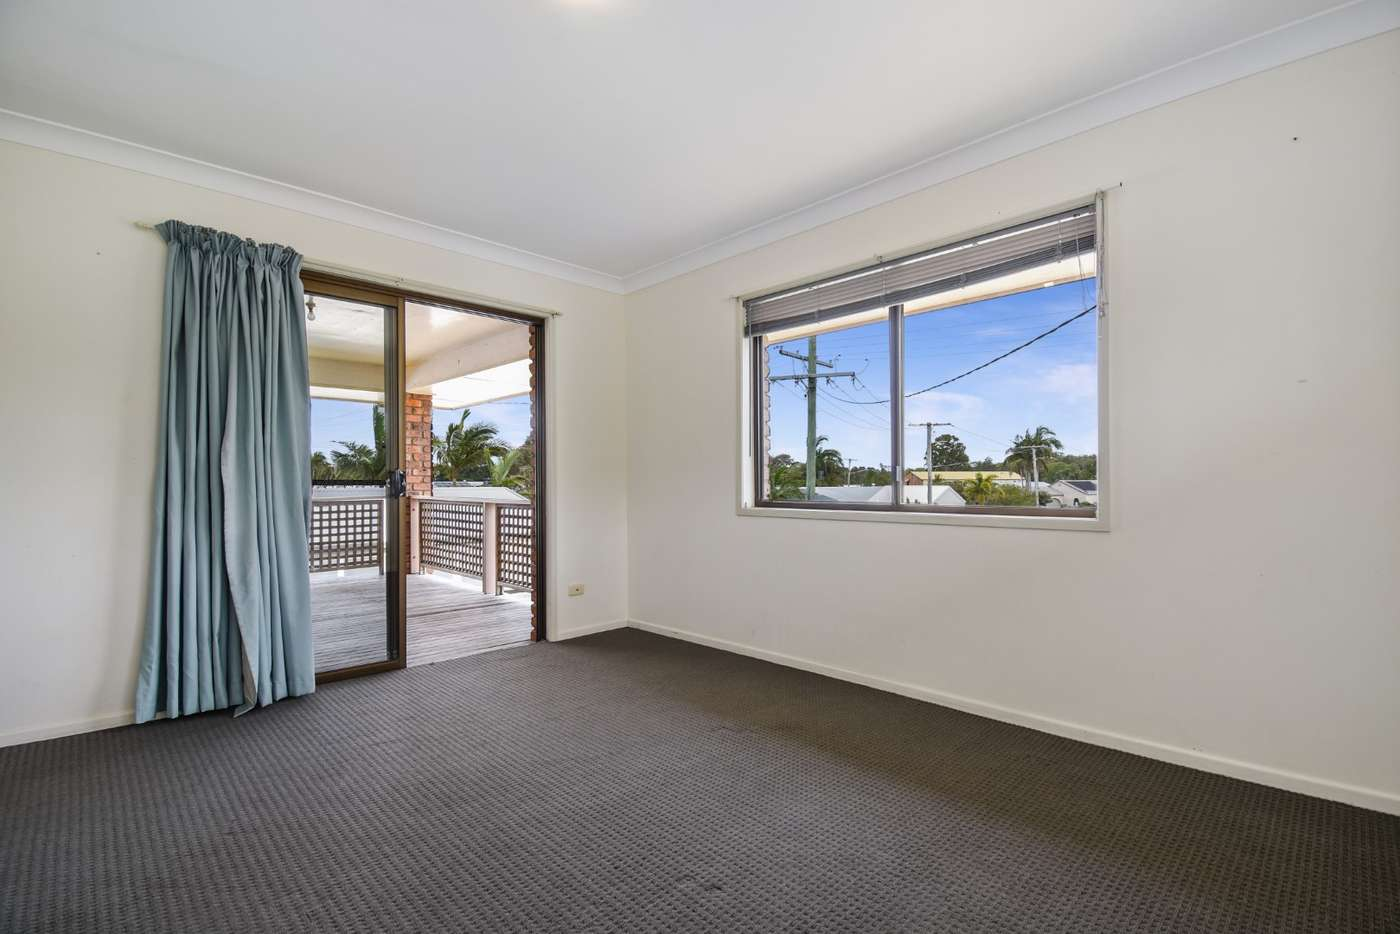 Sixth view of Homely house listing, 23 Currimundi Road, Currimundi QLD 4551